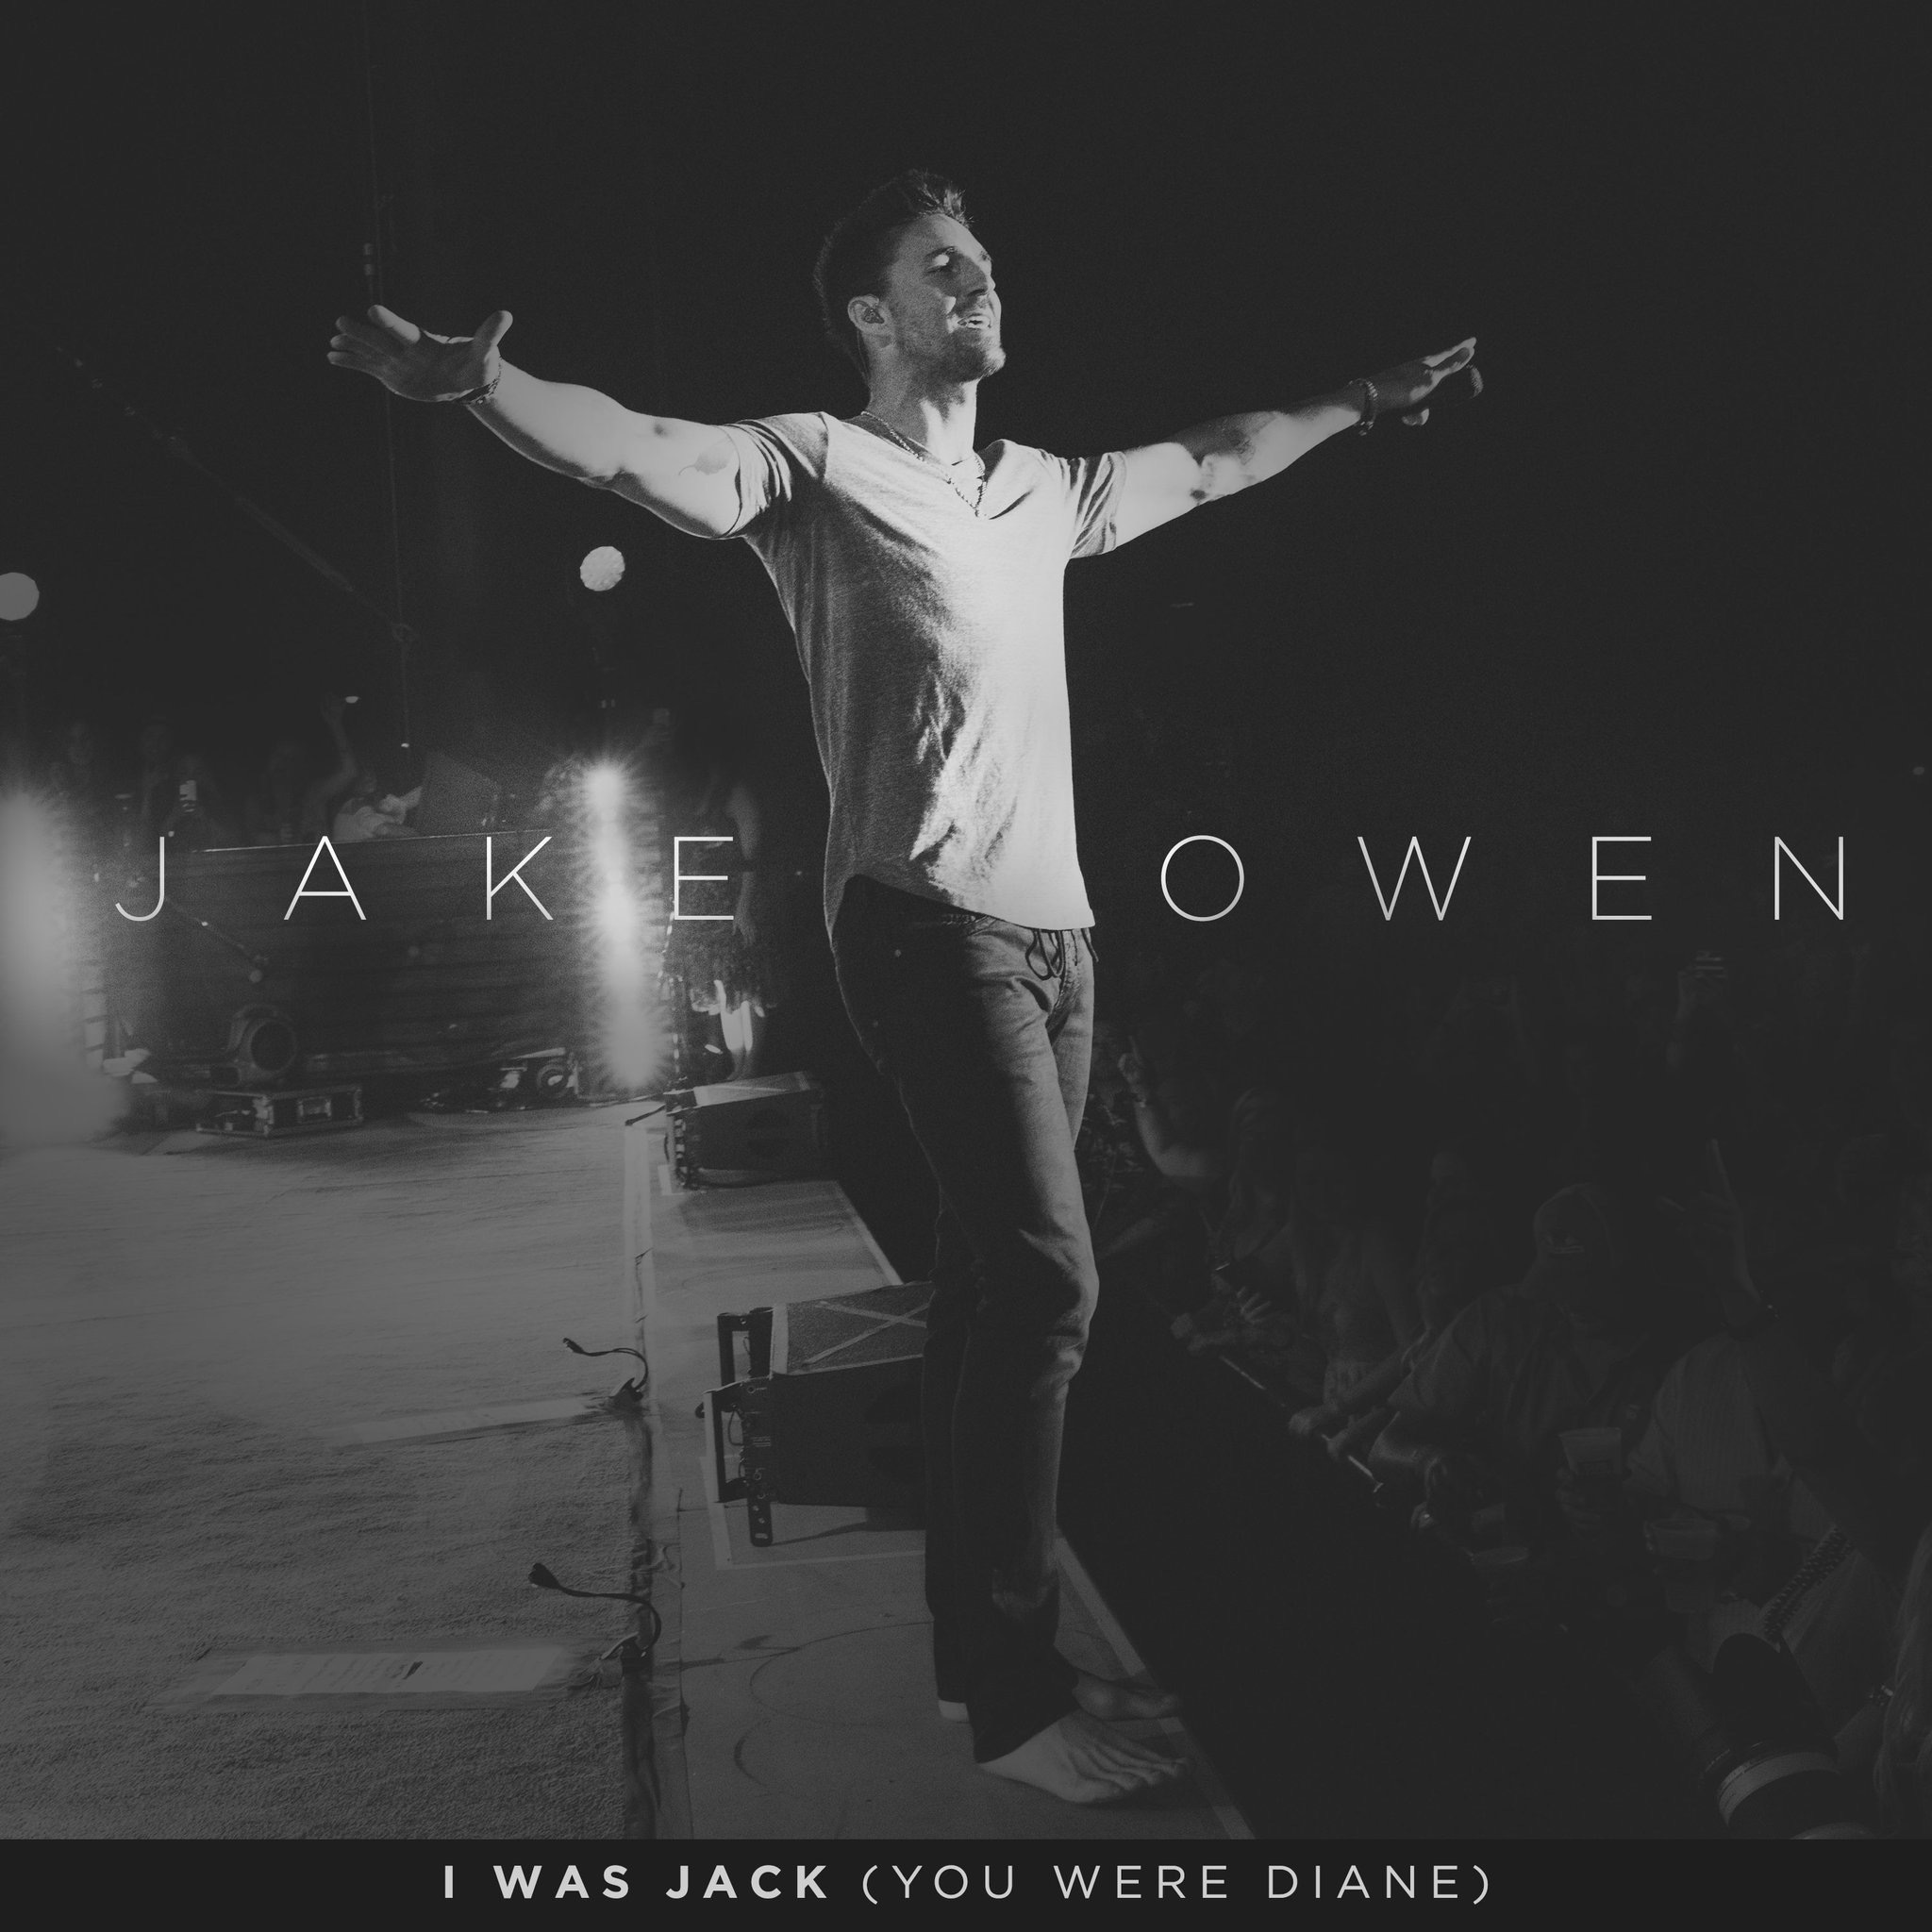 JAKE OWEN RELEASES NEW SINGLE I WAS JACK (YOU WERE DIANE)